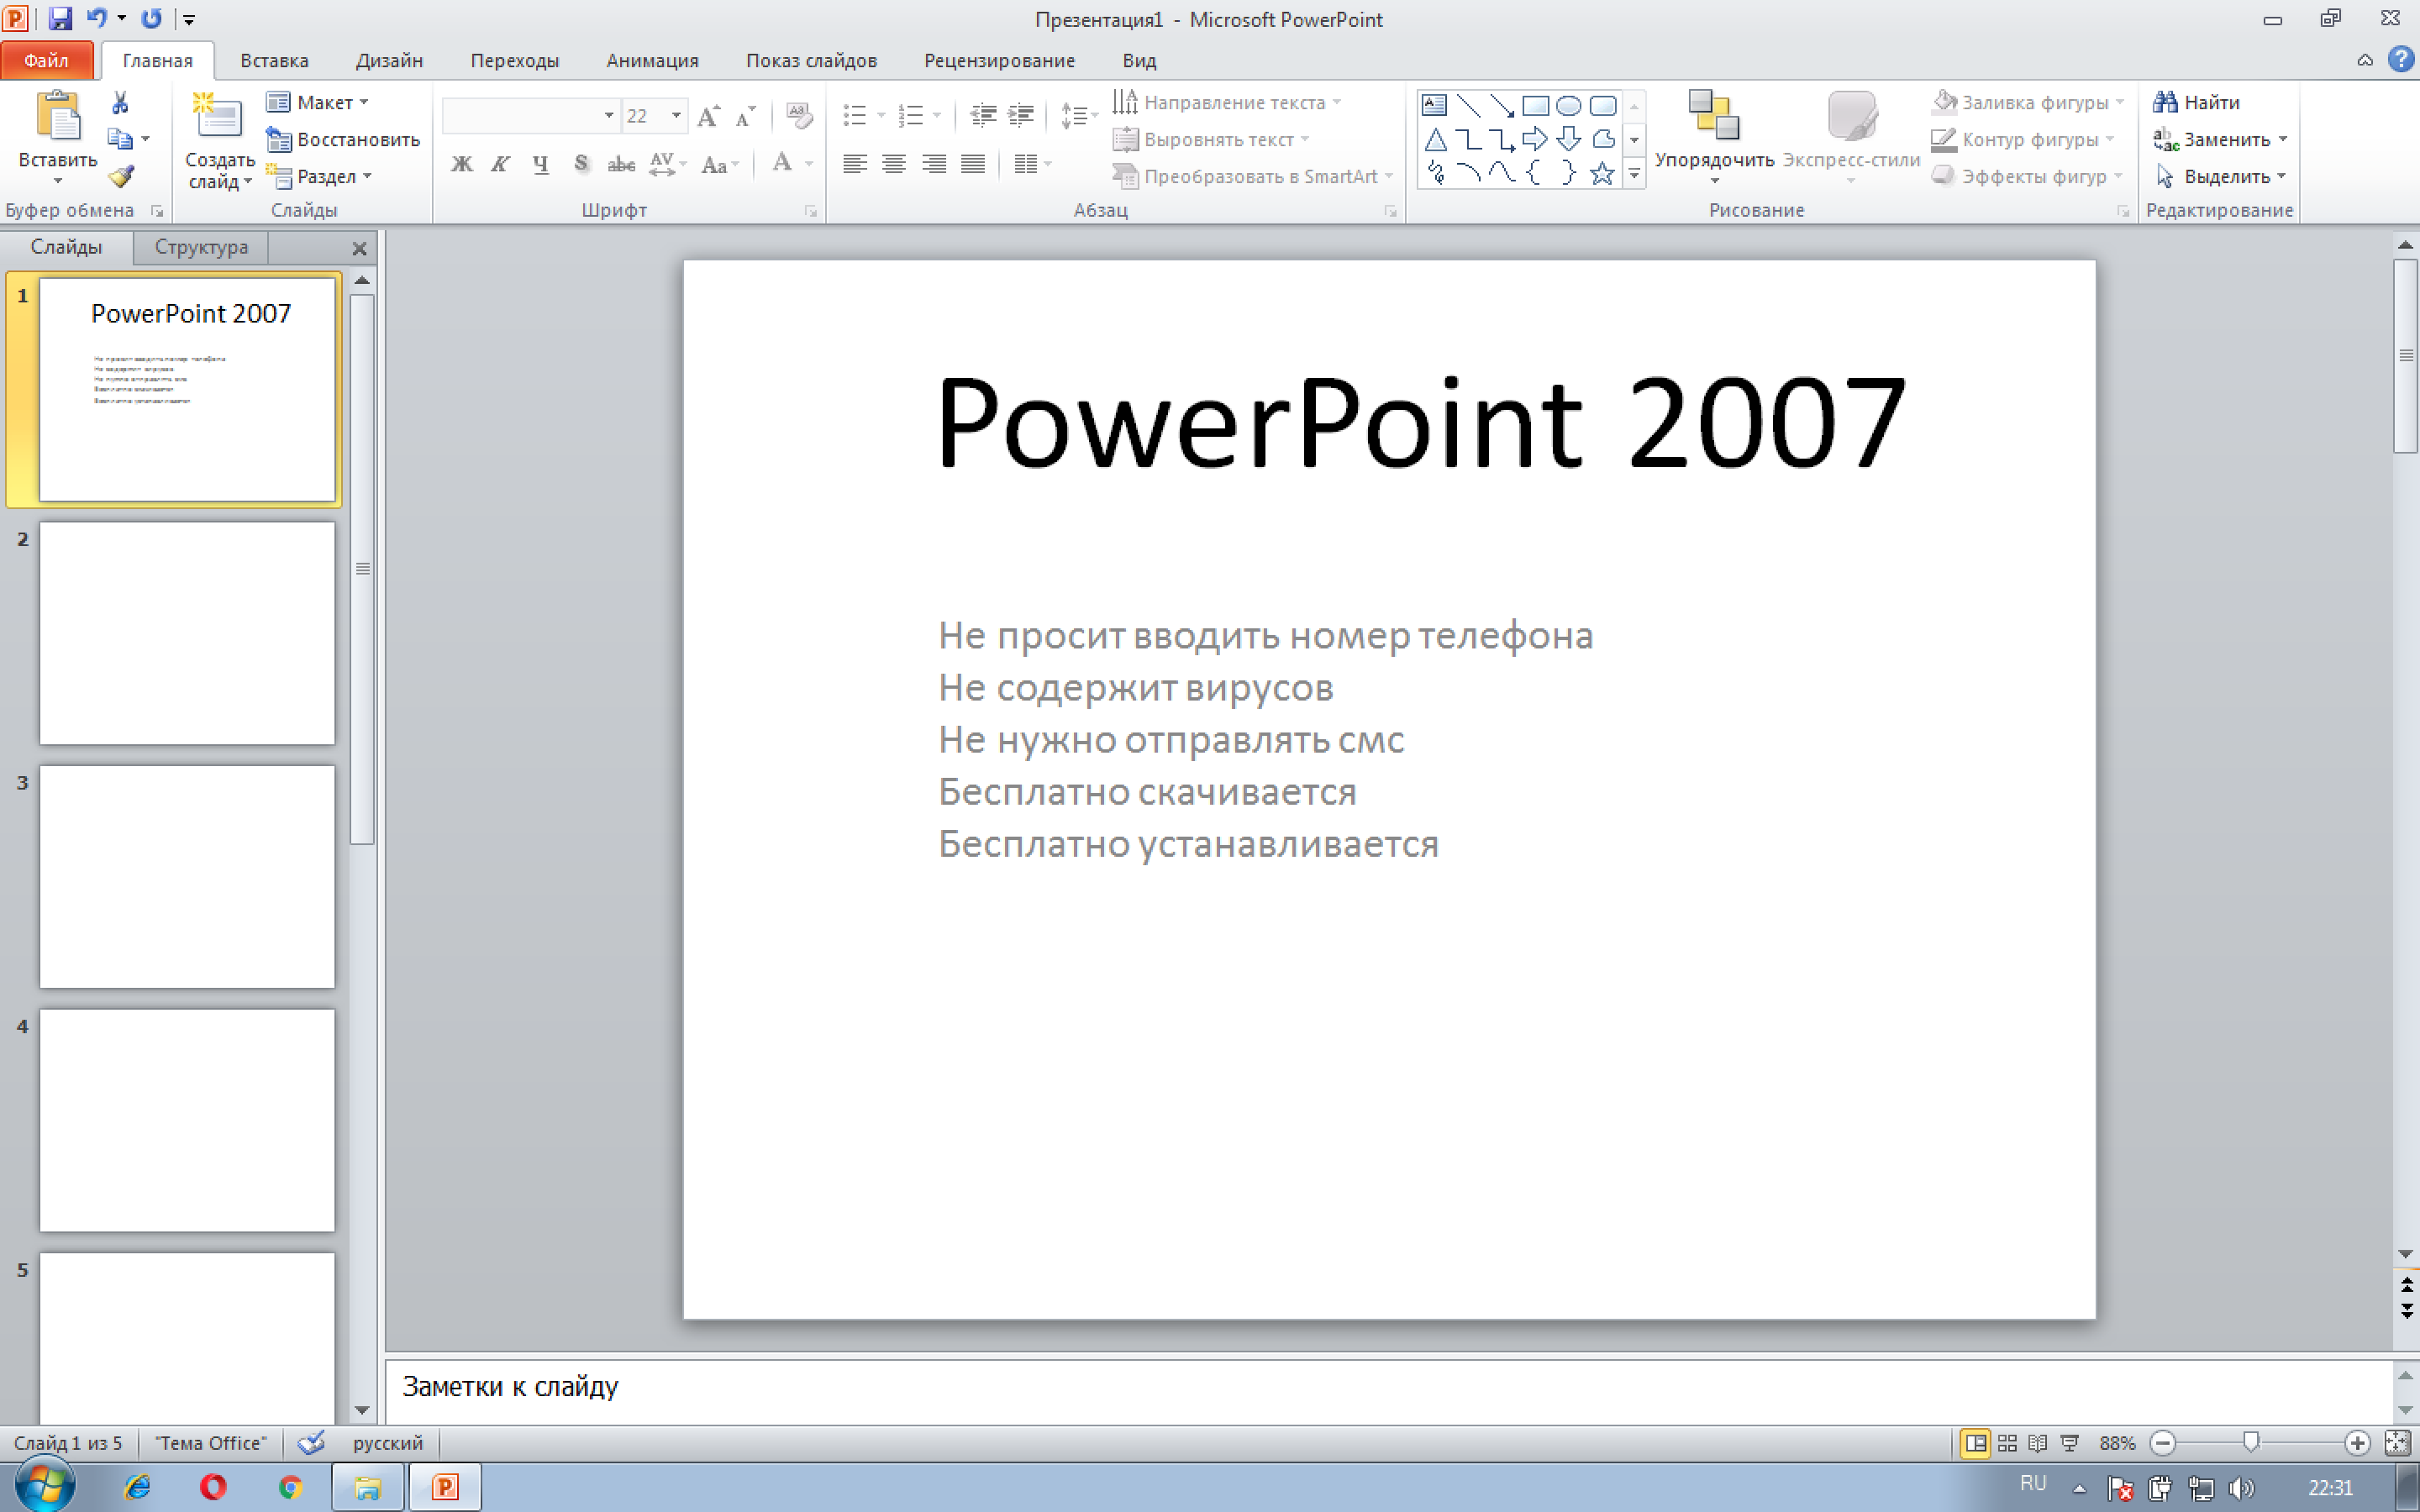 microsoft office powerpoint Running windows7 microsoft office 2007 home and student edition received an attachment as a pps file (power point slide show) when i click on it won't open went to default programs, opened.